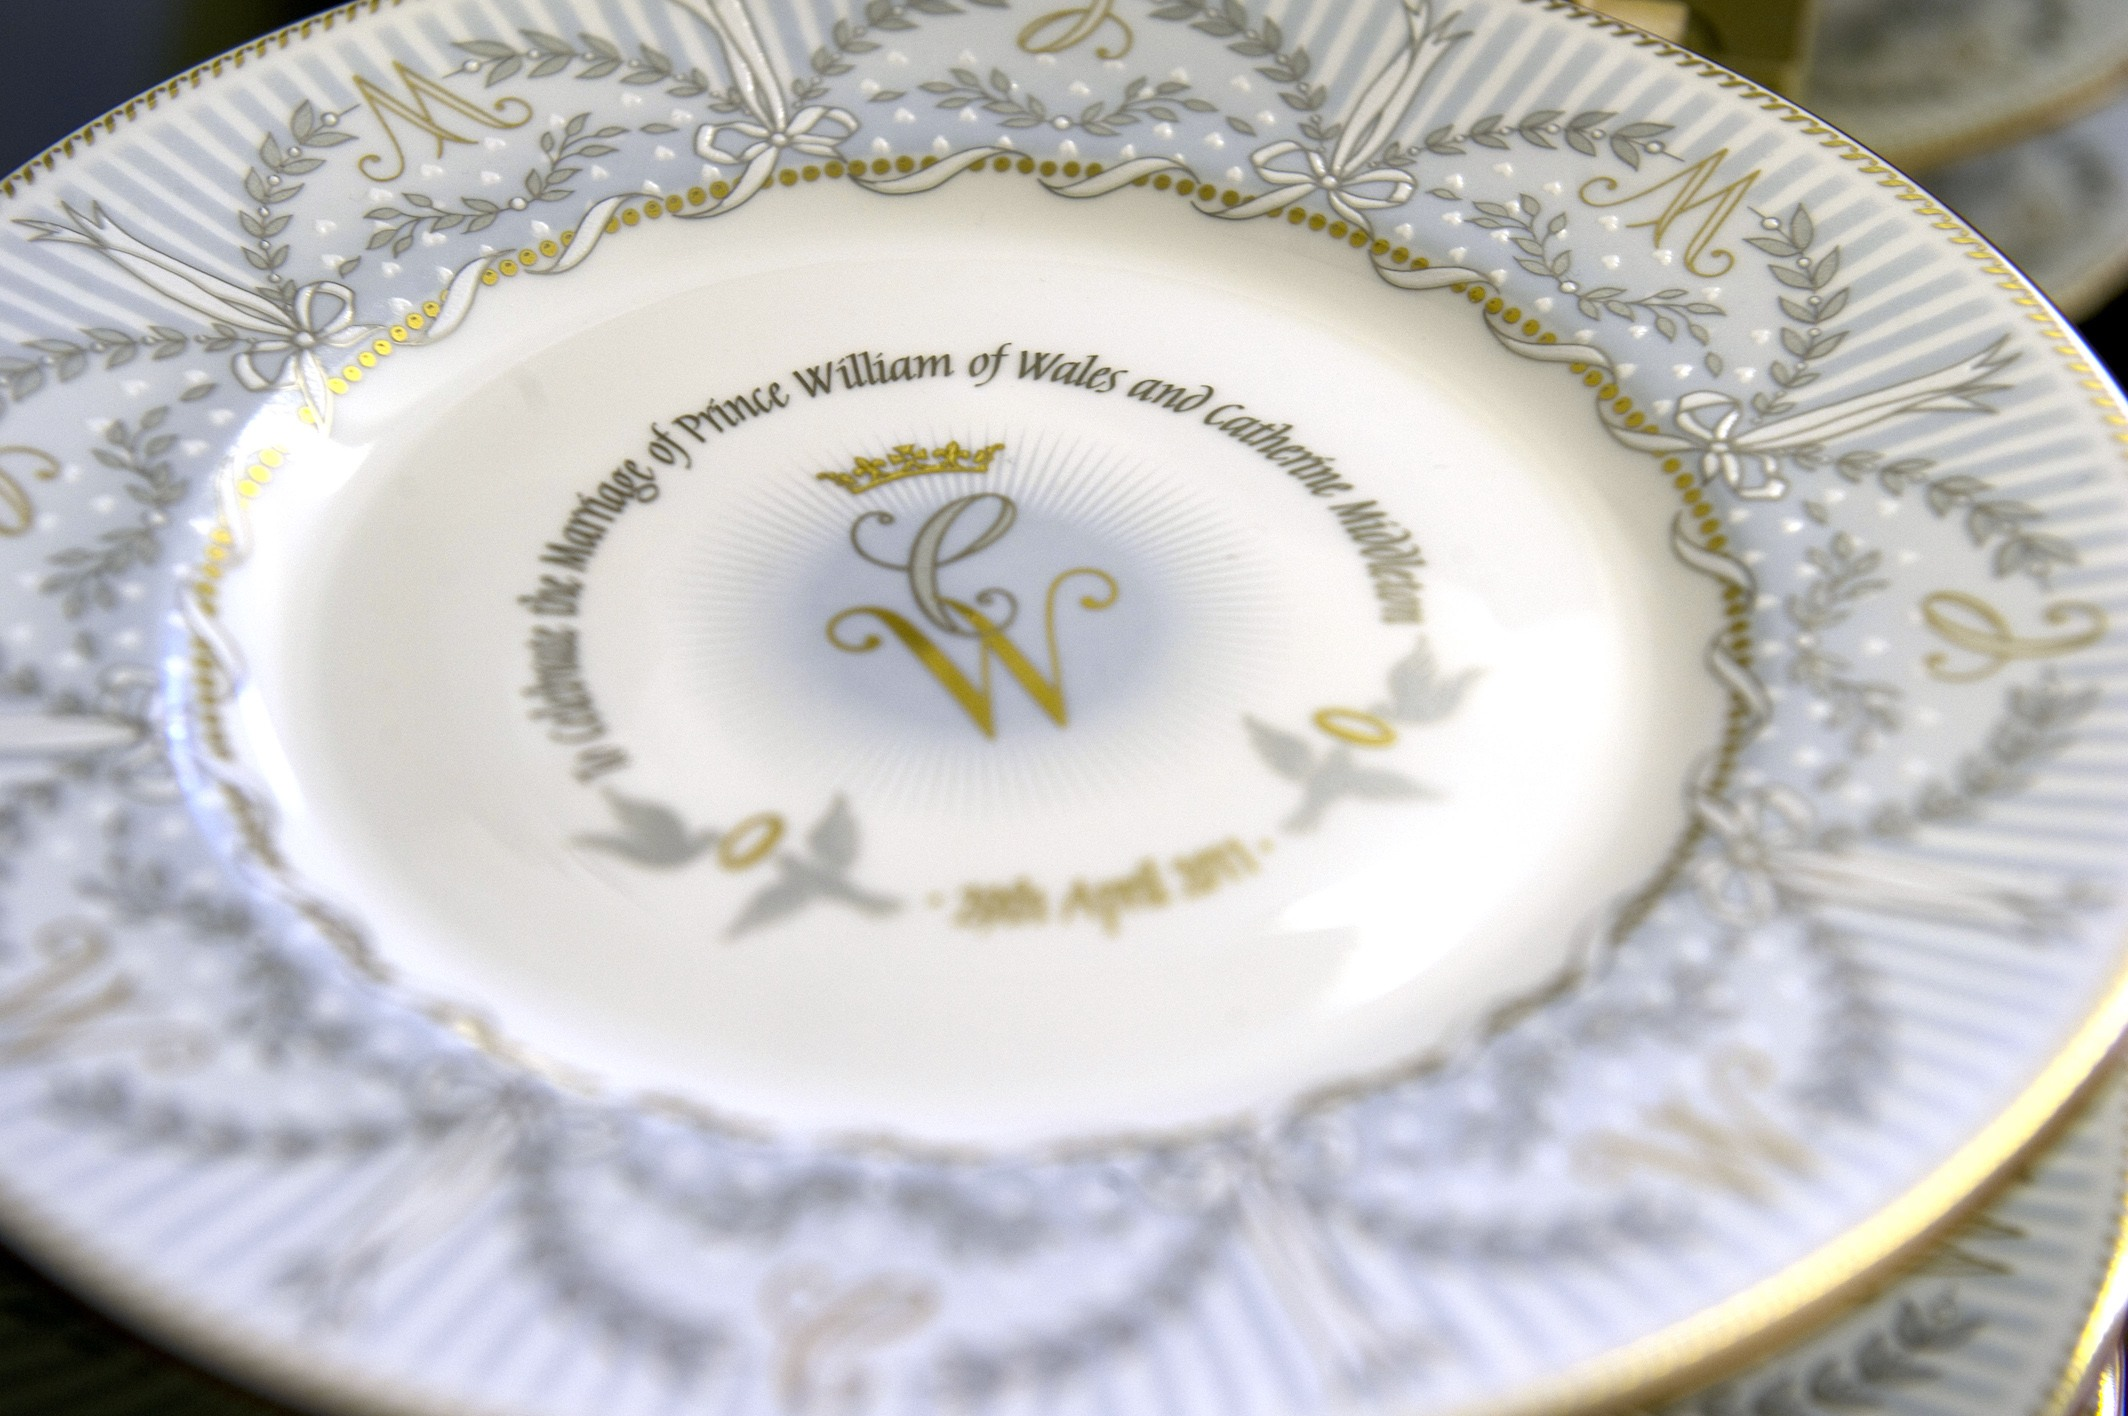 An official royal wedding commemorative plate Kate and William